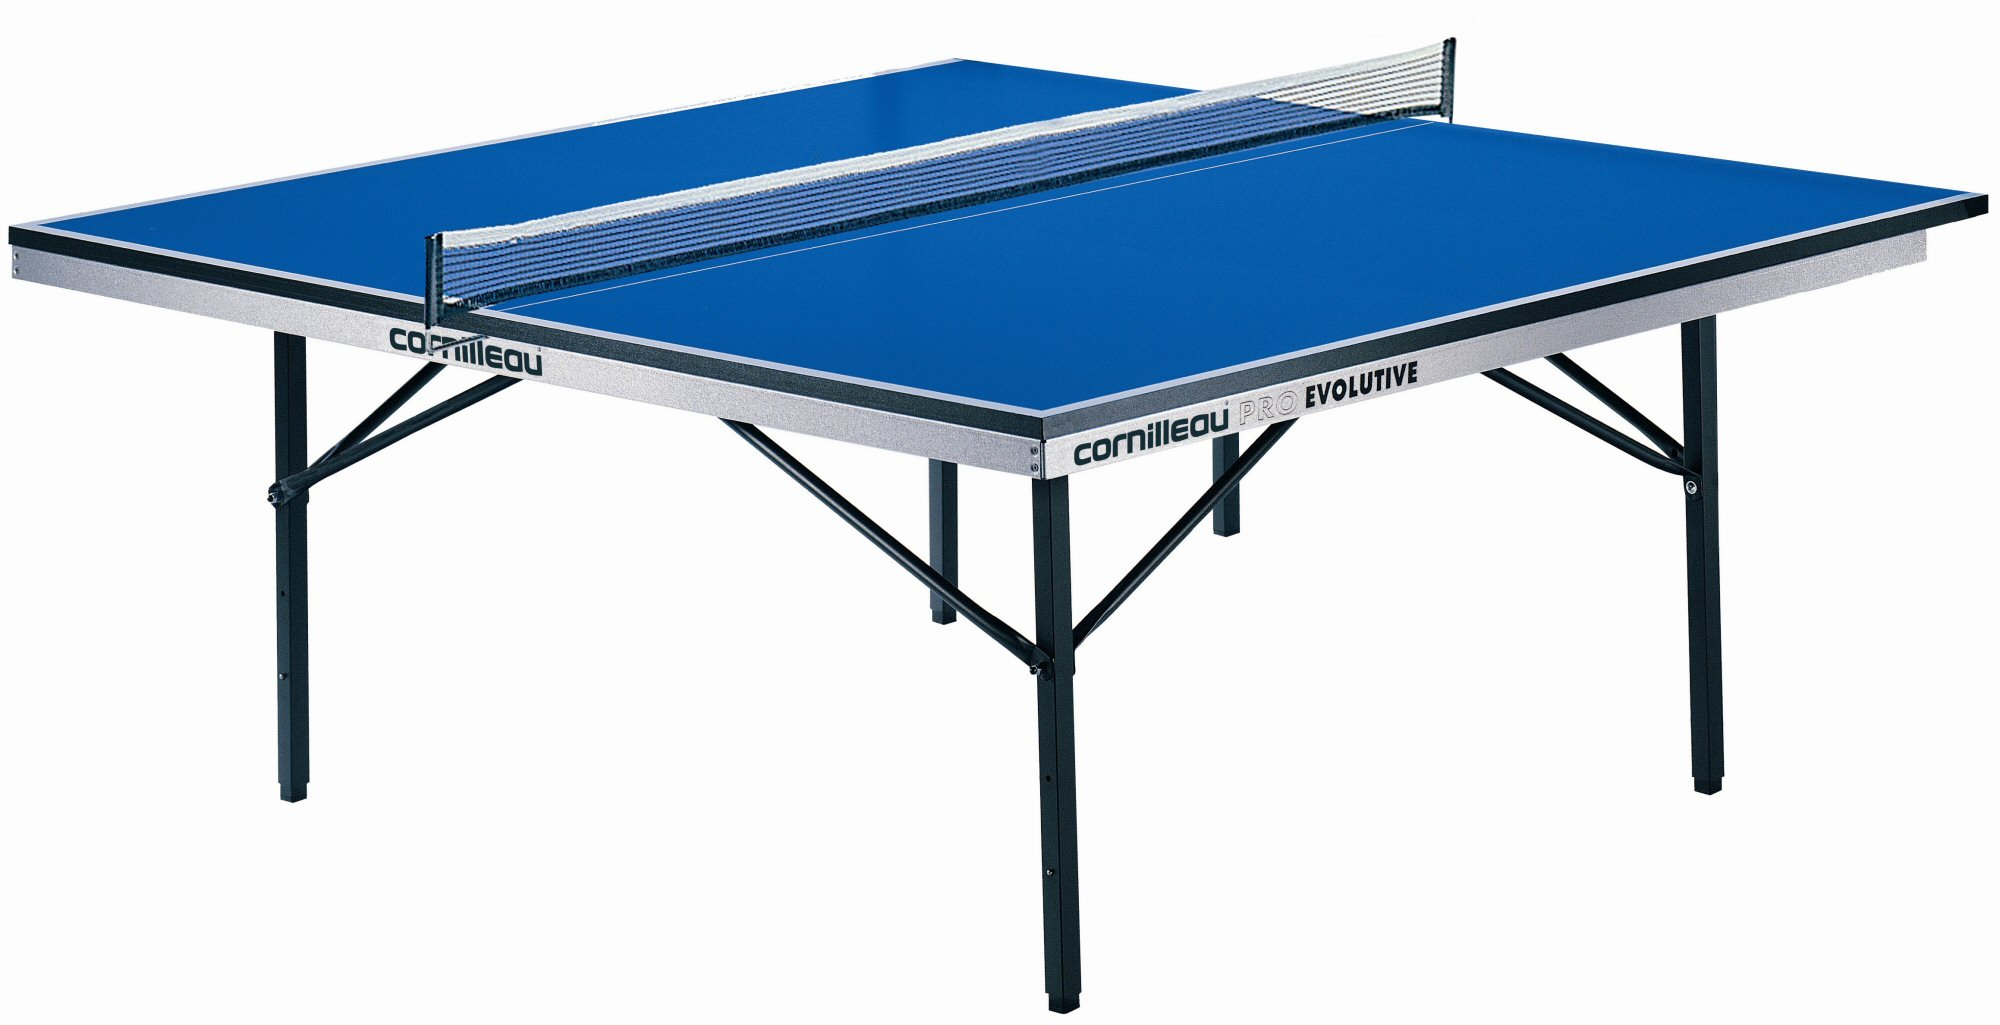 Dimensions Of Standard Table Tennis Board Designs